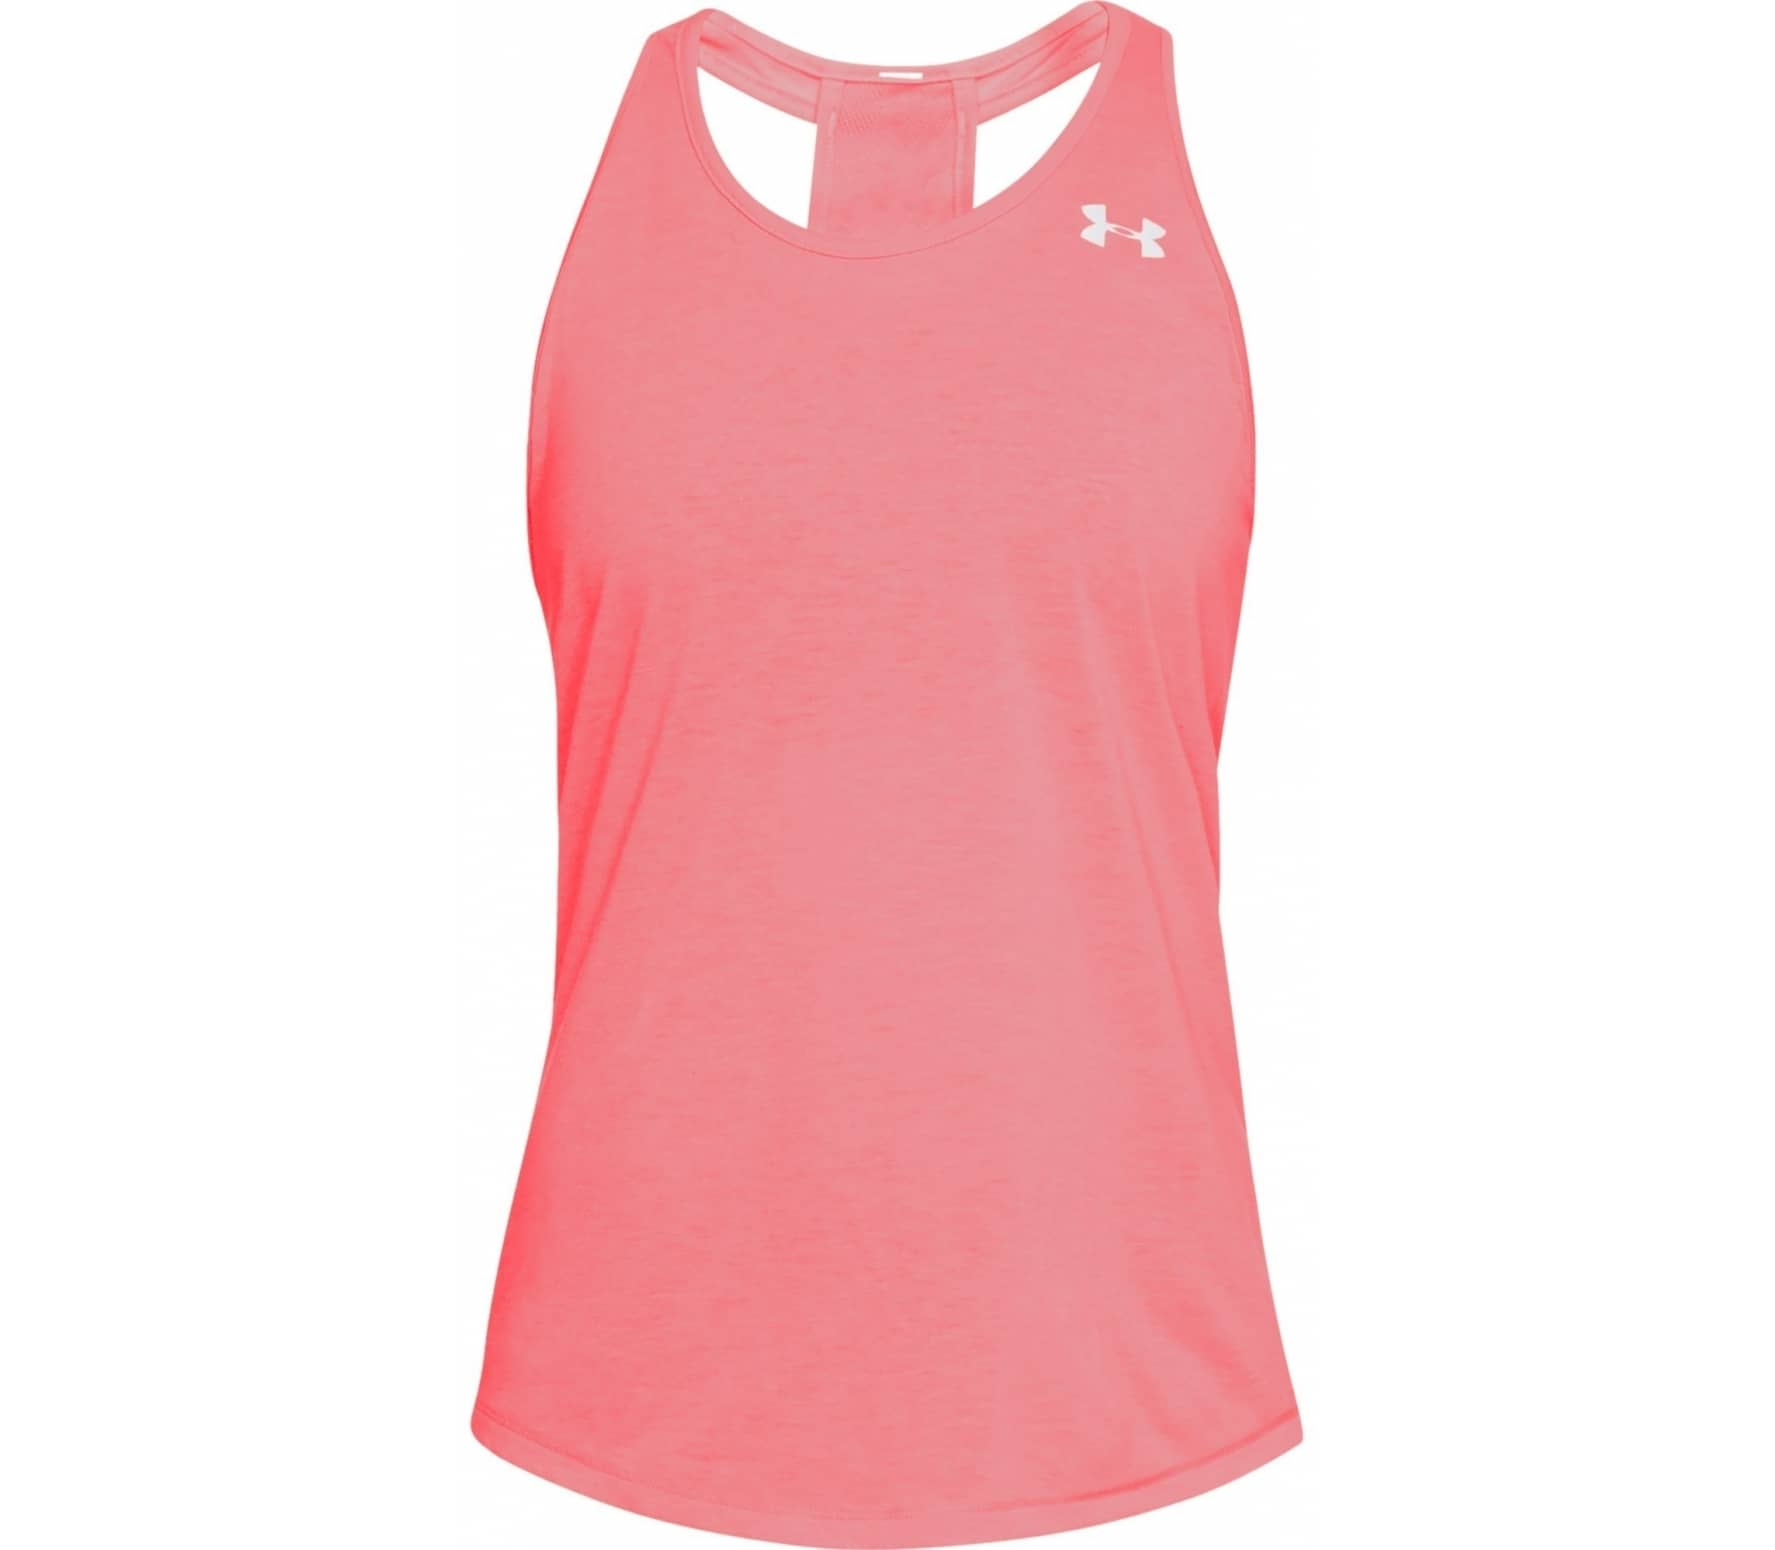 Under Armour - Threadborne Swyft Racer women s running tank top top ... 1d9c1a060